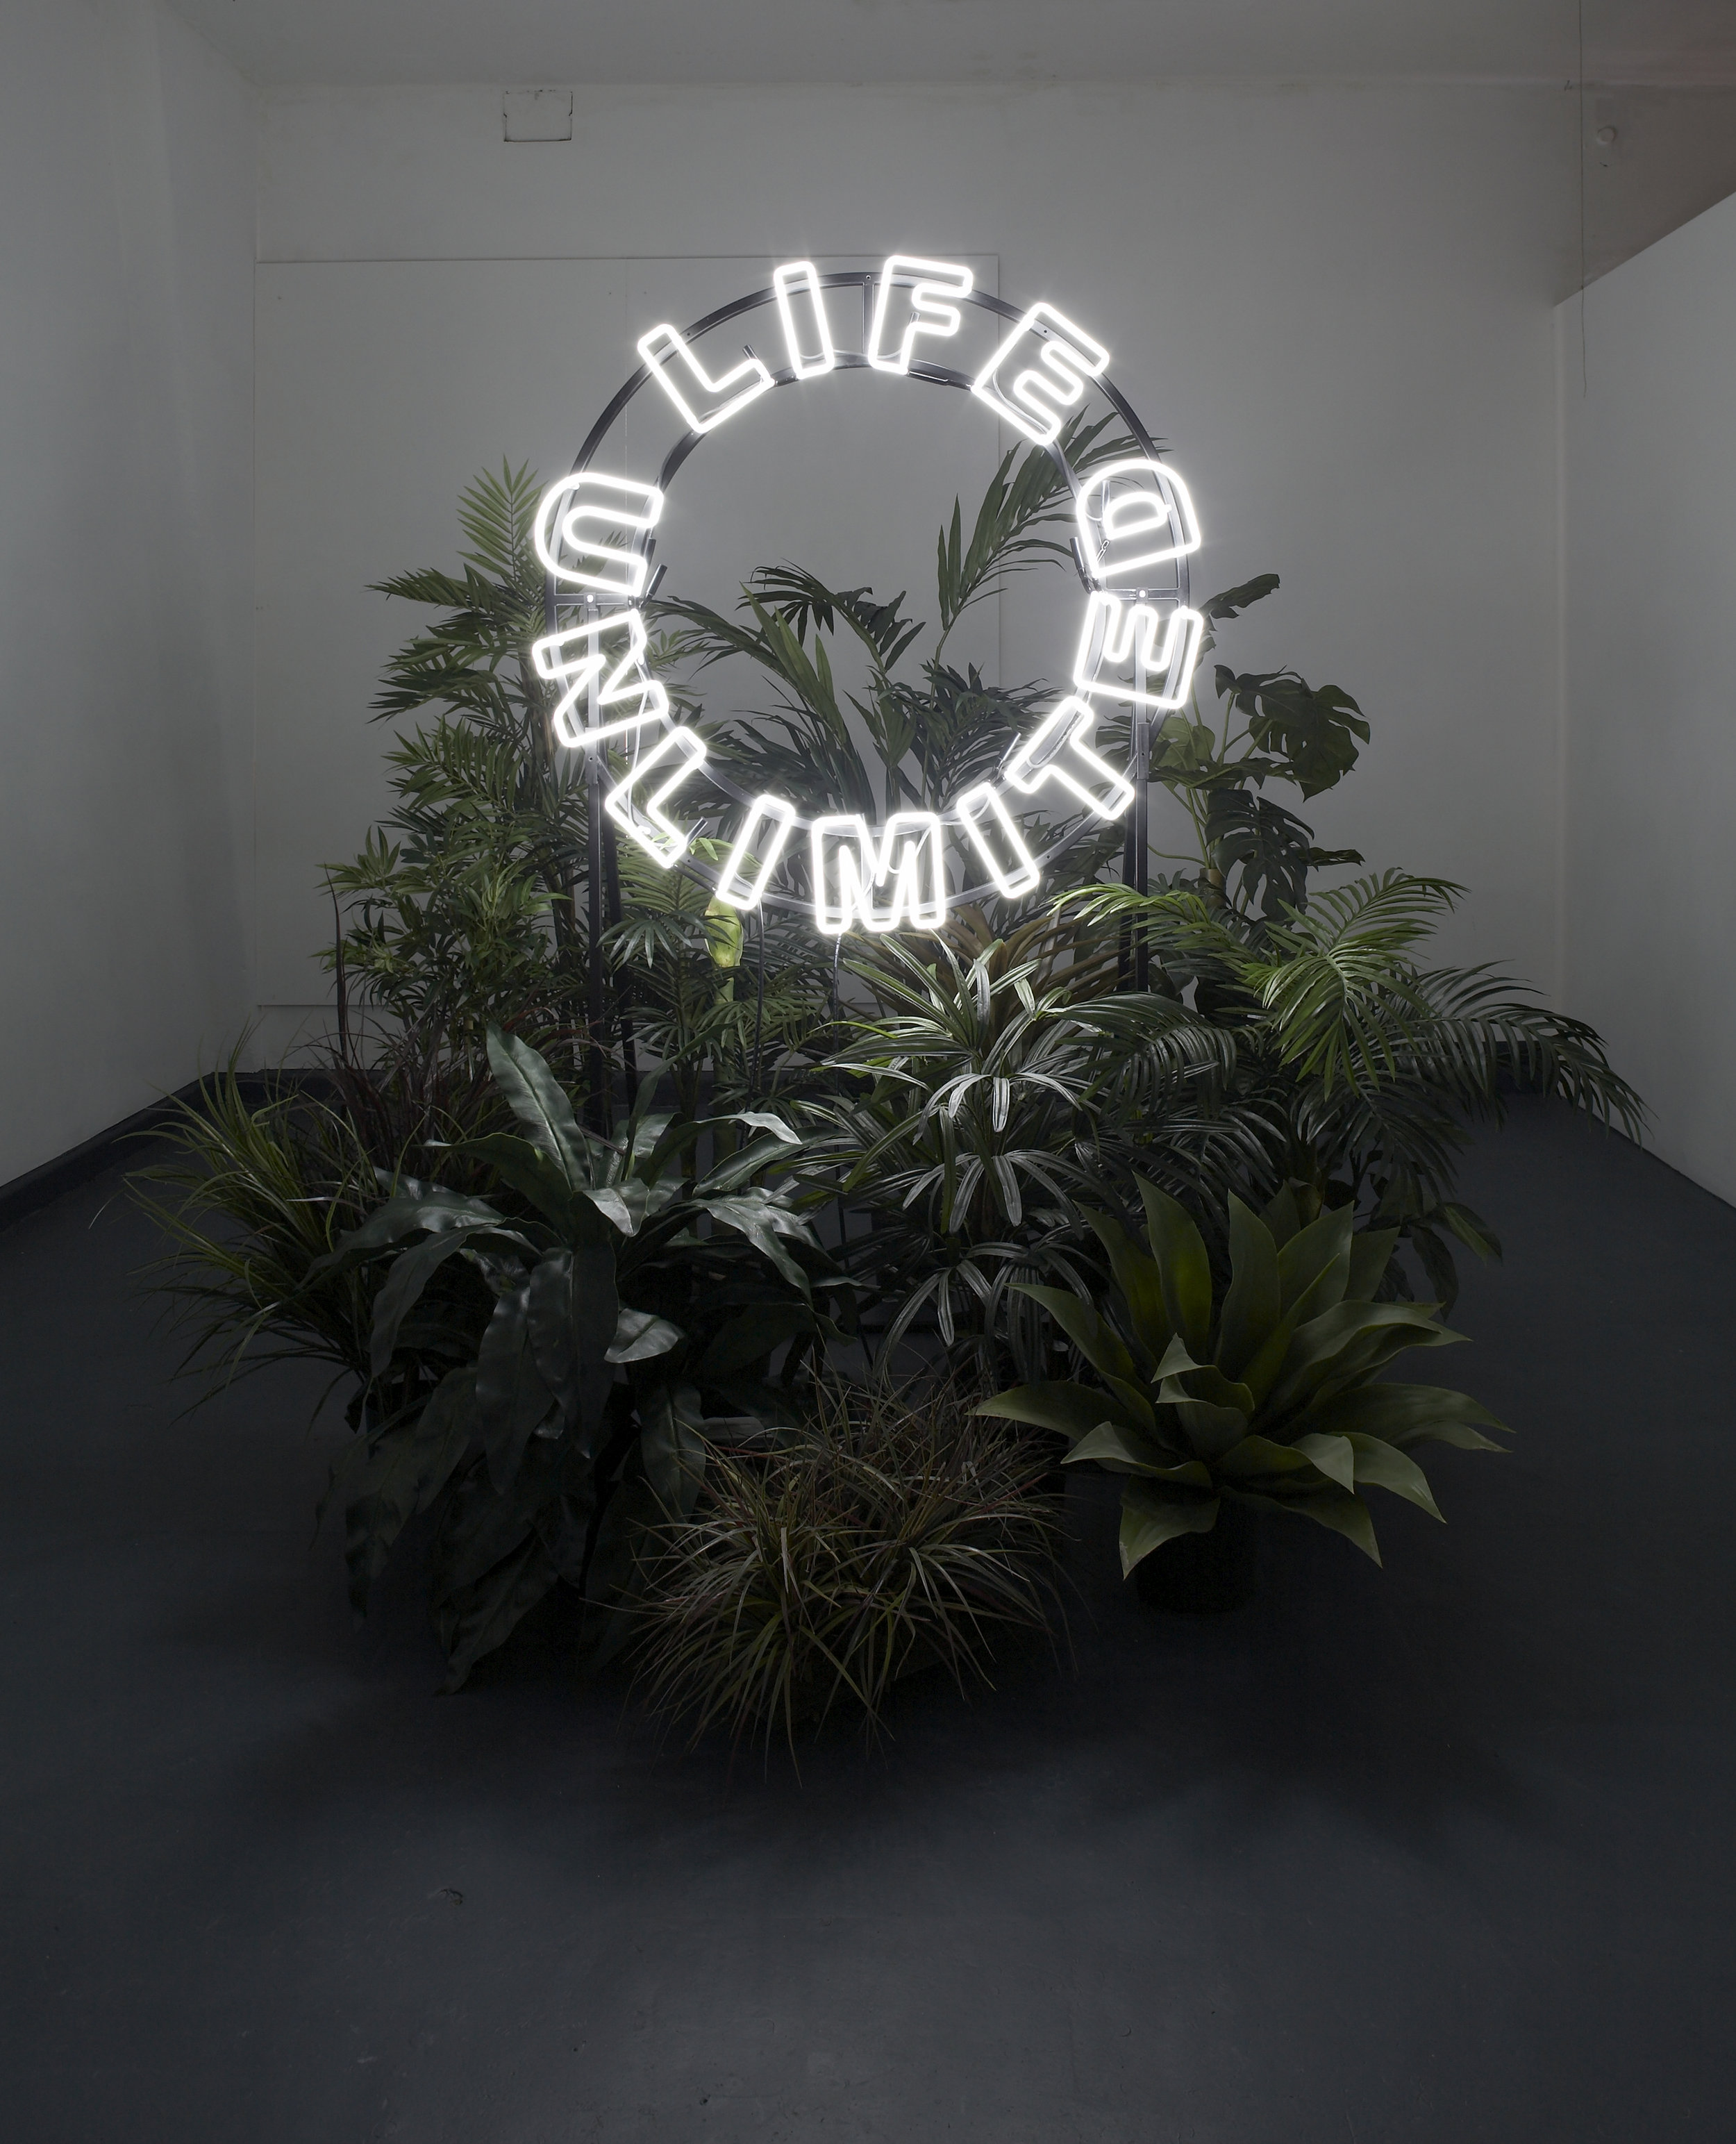 Kristin McIver  Divine Intervention , 2010 neon, steel, artificial plants approx. 78 x 78 in (198.1 x 198.1 cm)